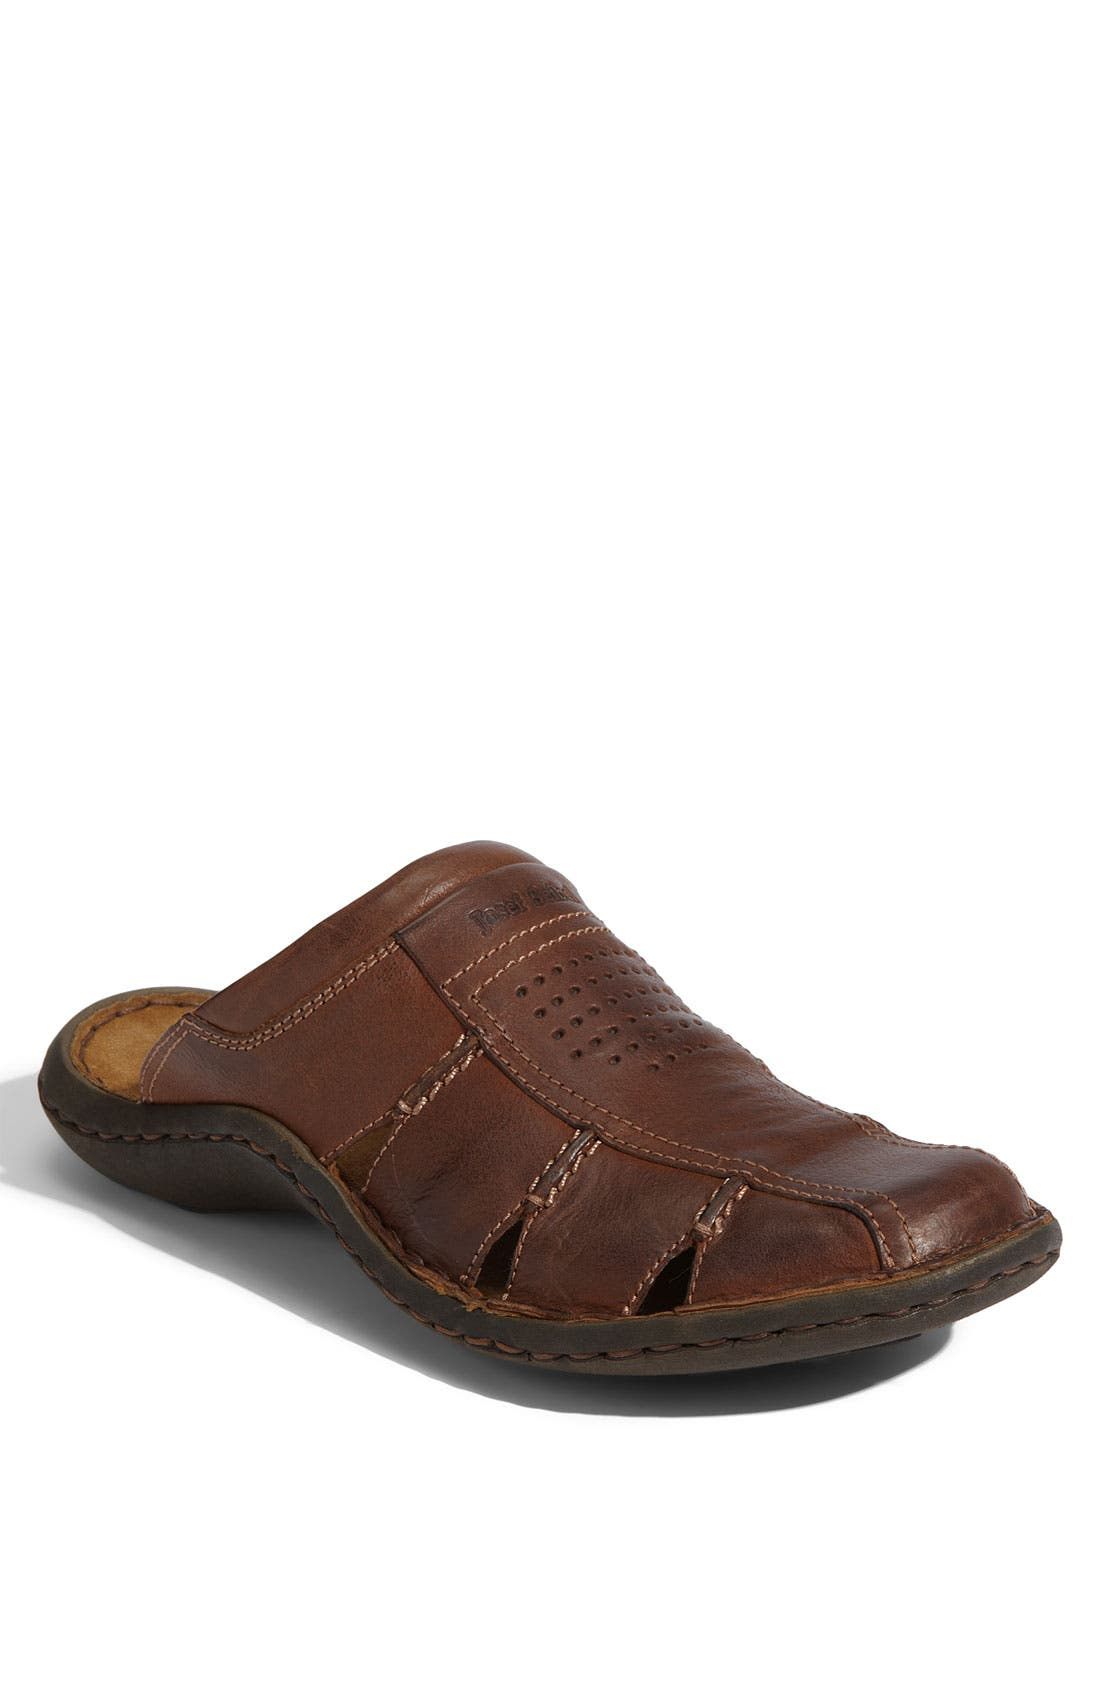 Alternate Image 1 Selected - Josef Seibel 'Lawson' Clog Sandal